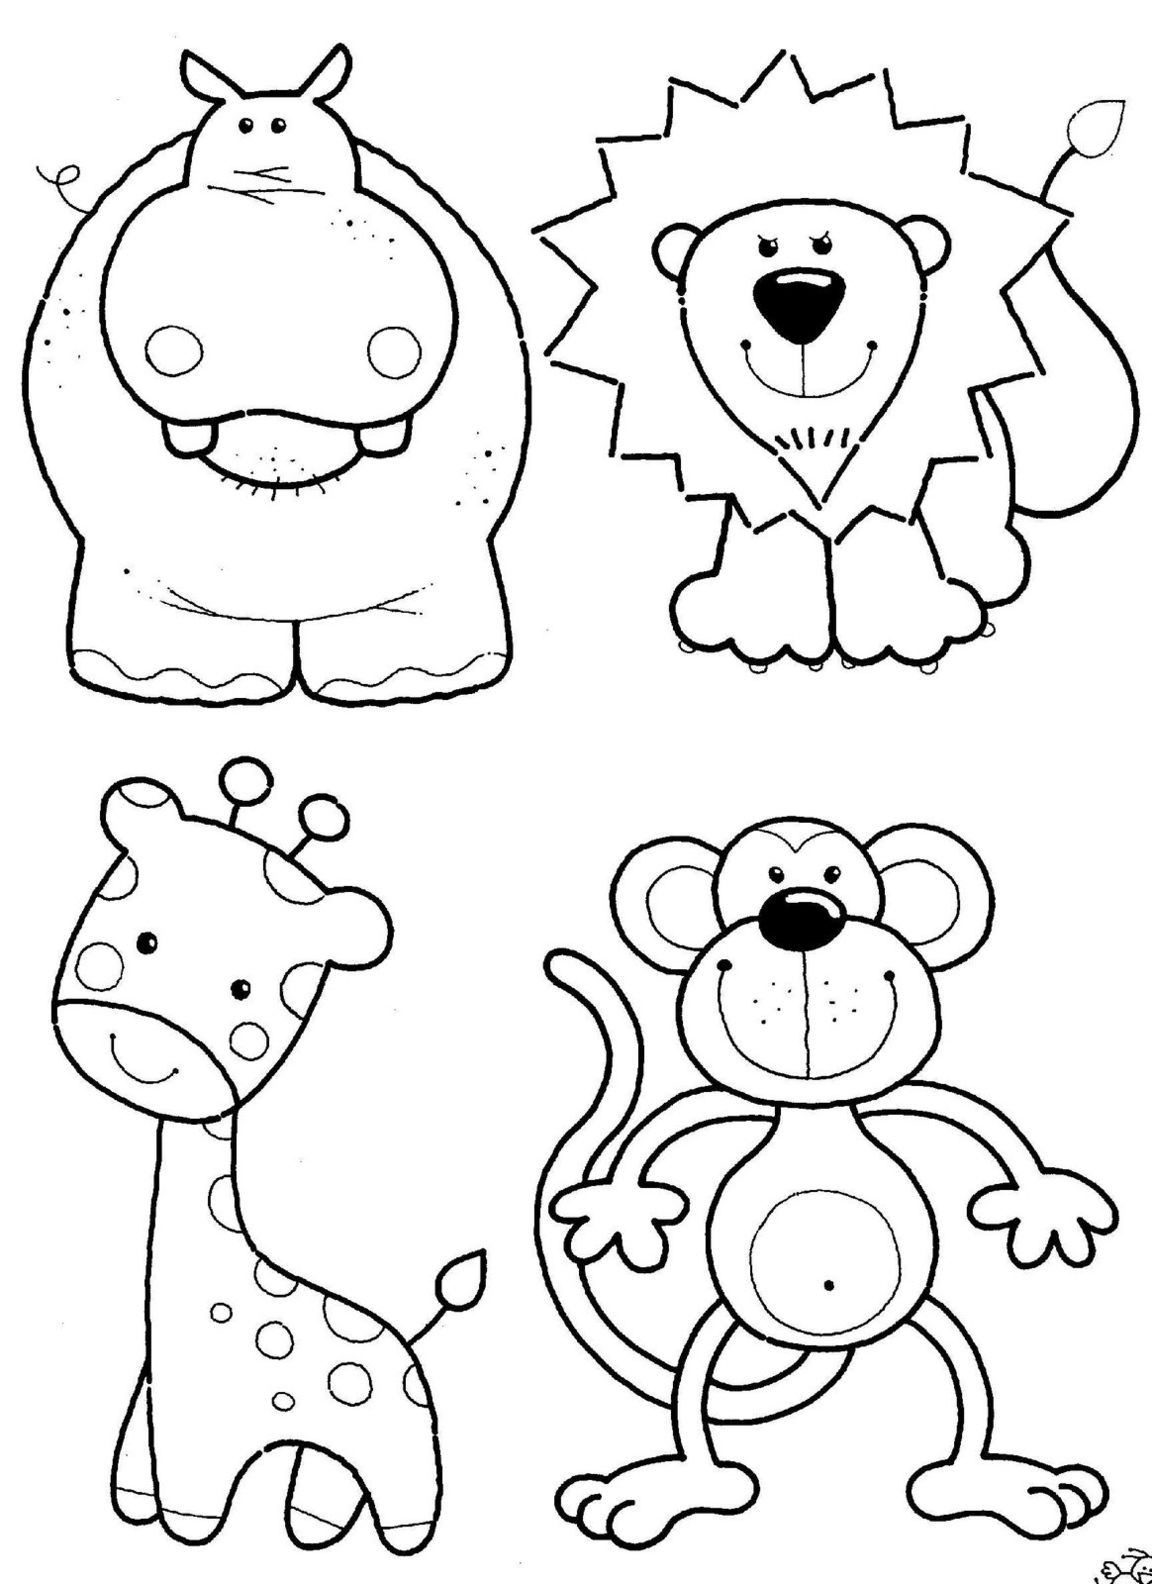 Coloring templates animals